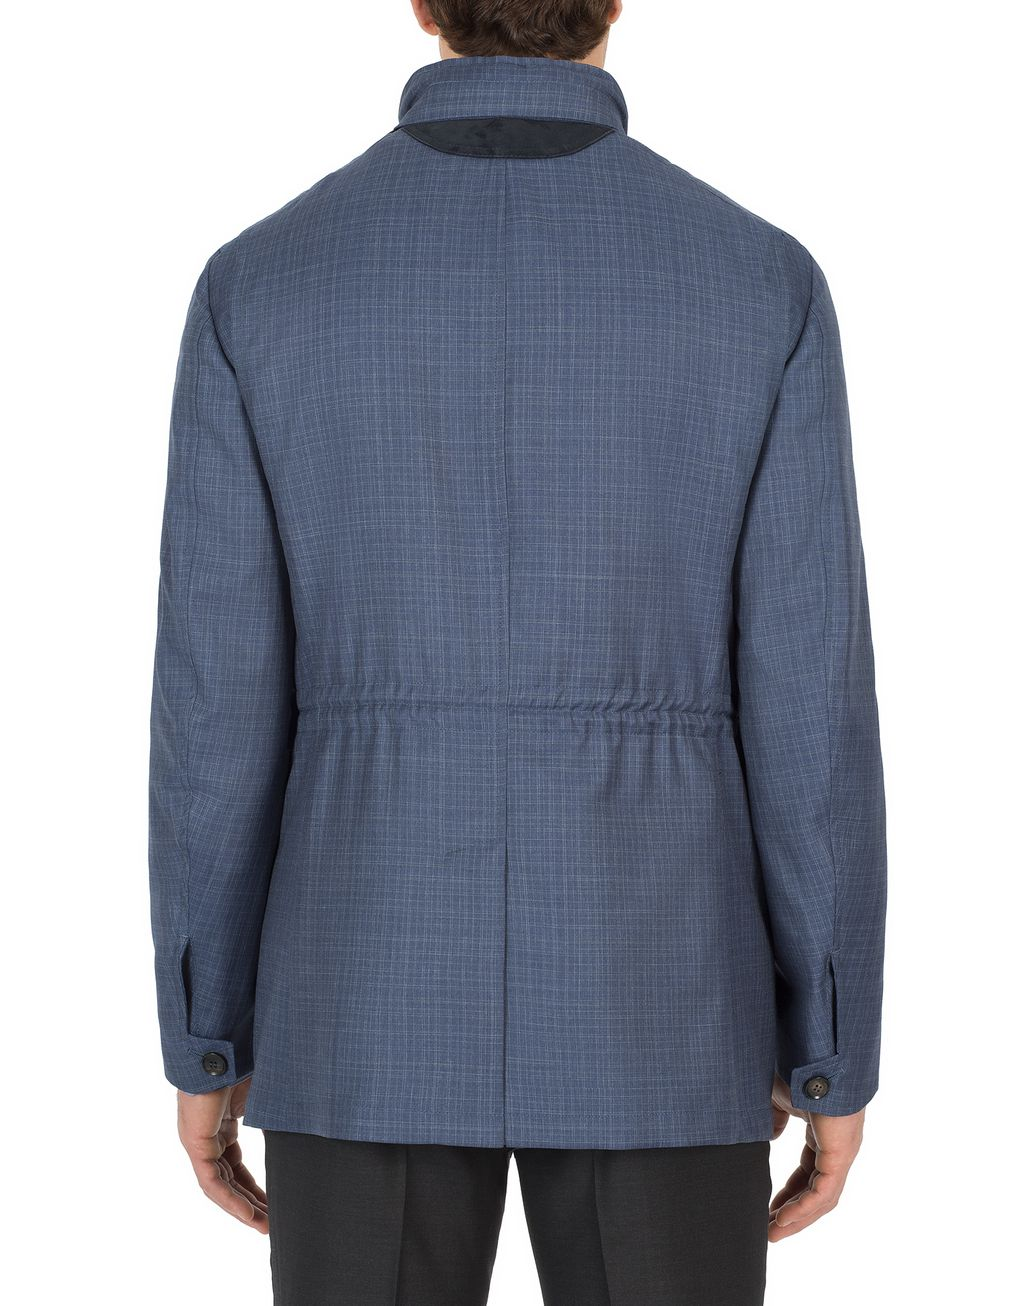 BRIONI Navy-Blue Check Trans-Seasonal Field Jacket Outerwear Man d